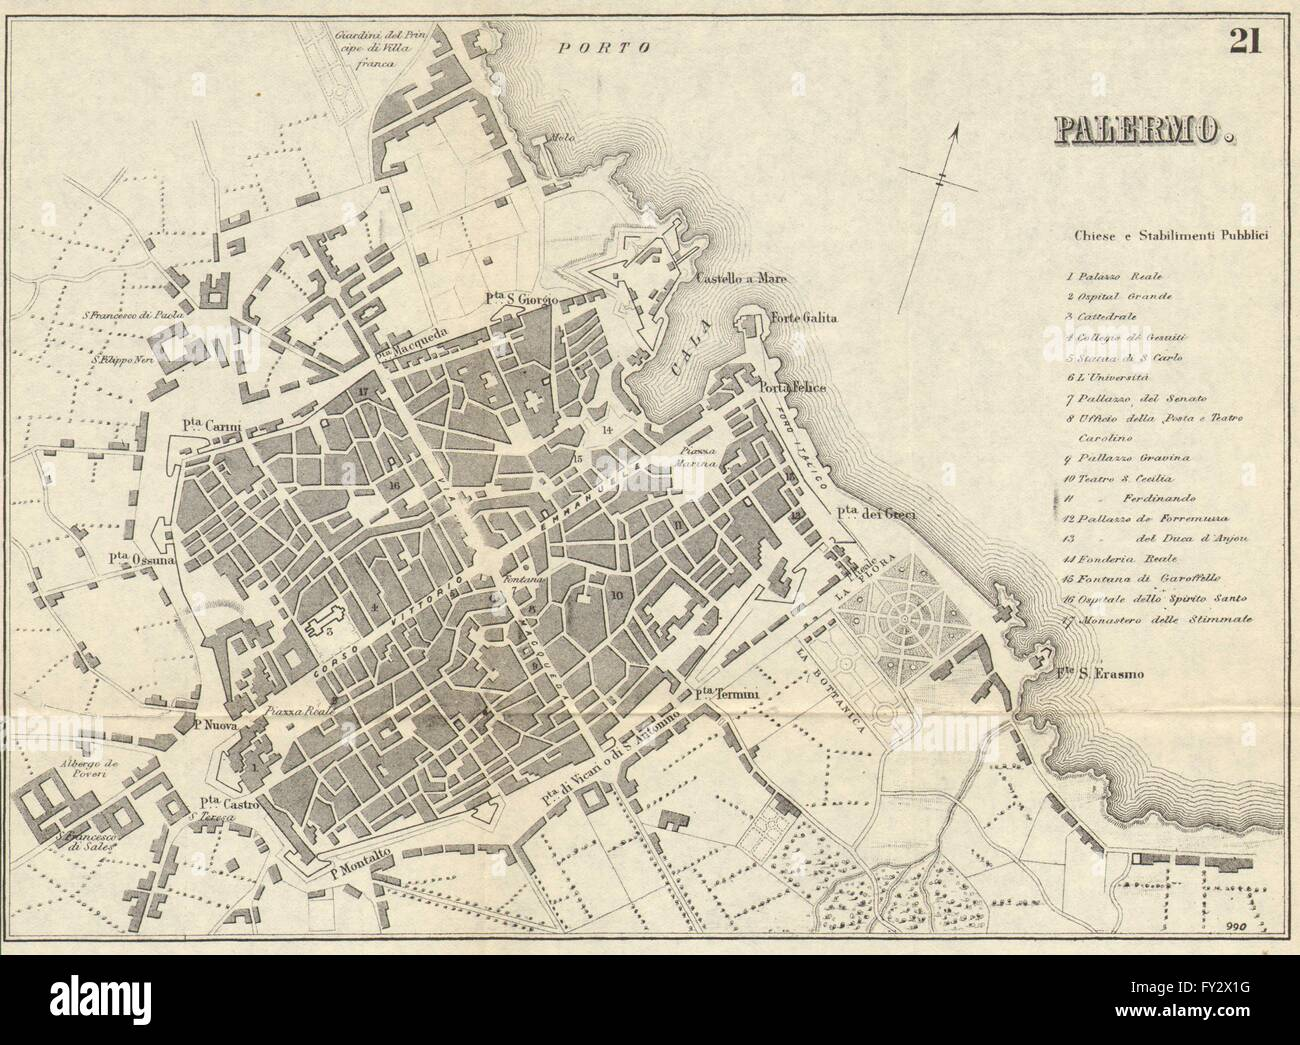 Palermo Antique Town Plan City Map Italy Bradshaw 1890 Stock